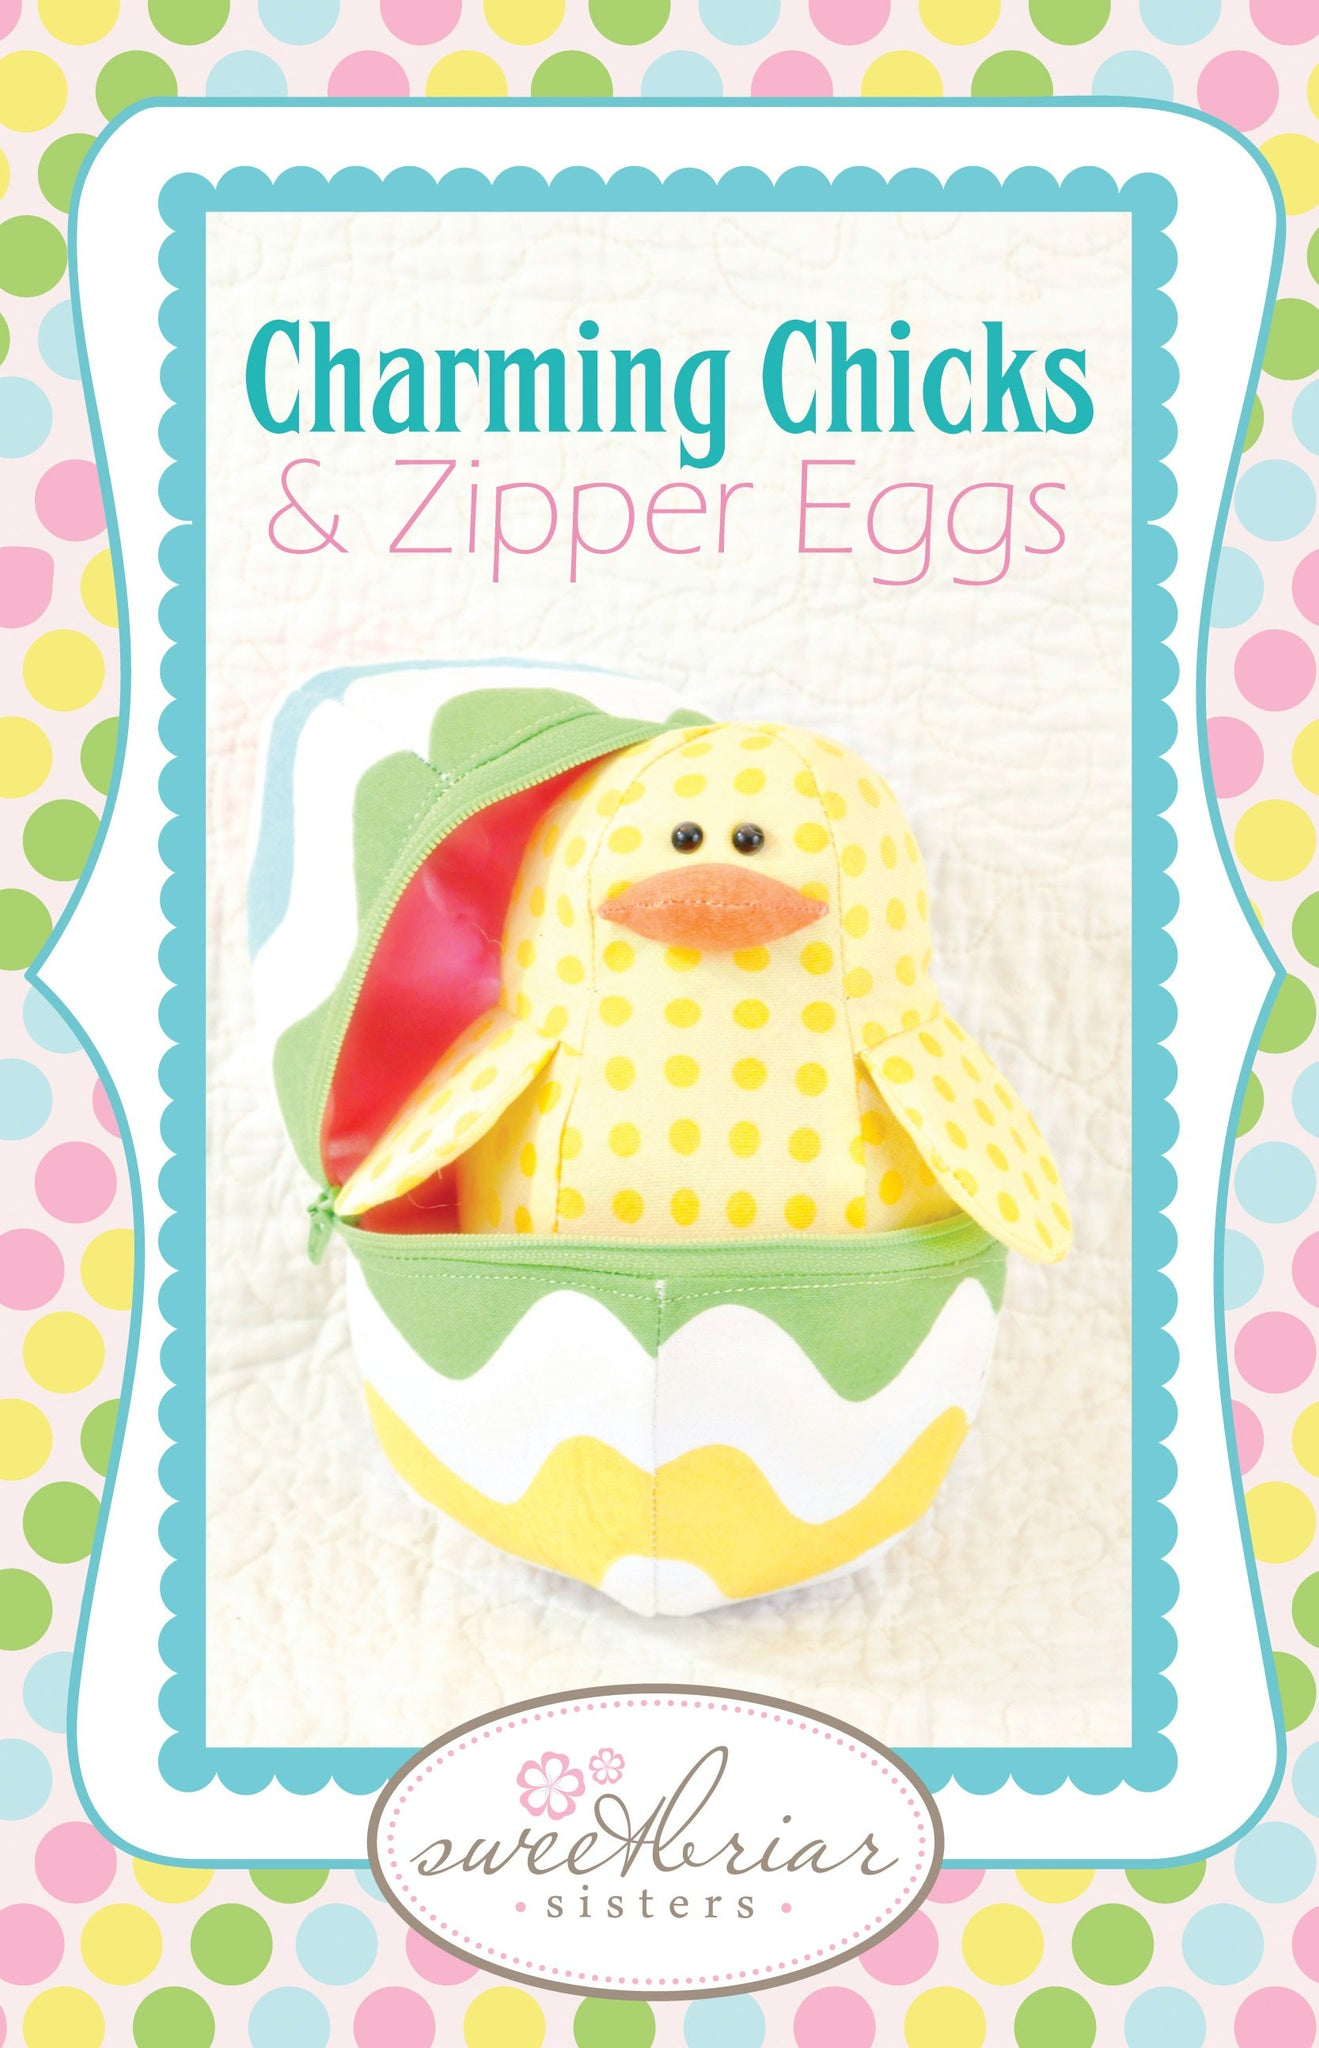 Charming Chicks and Zipper Eggs